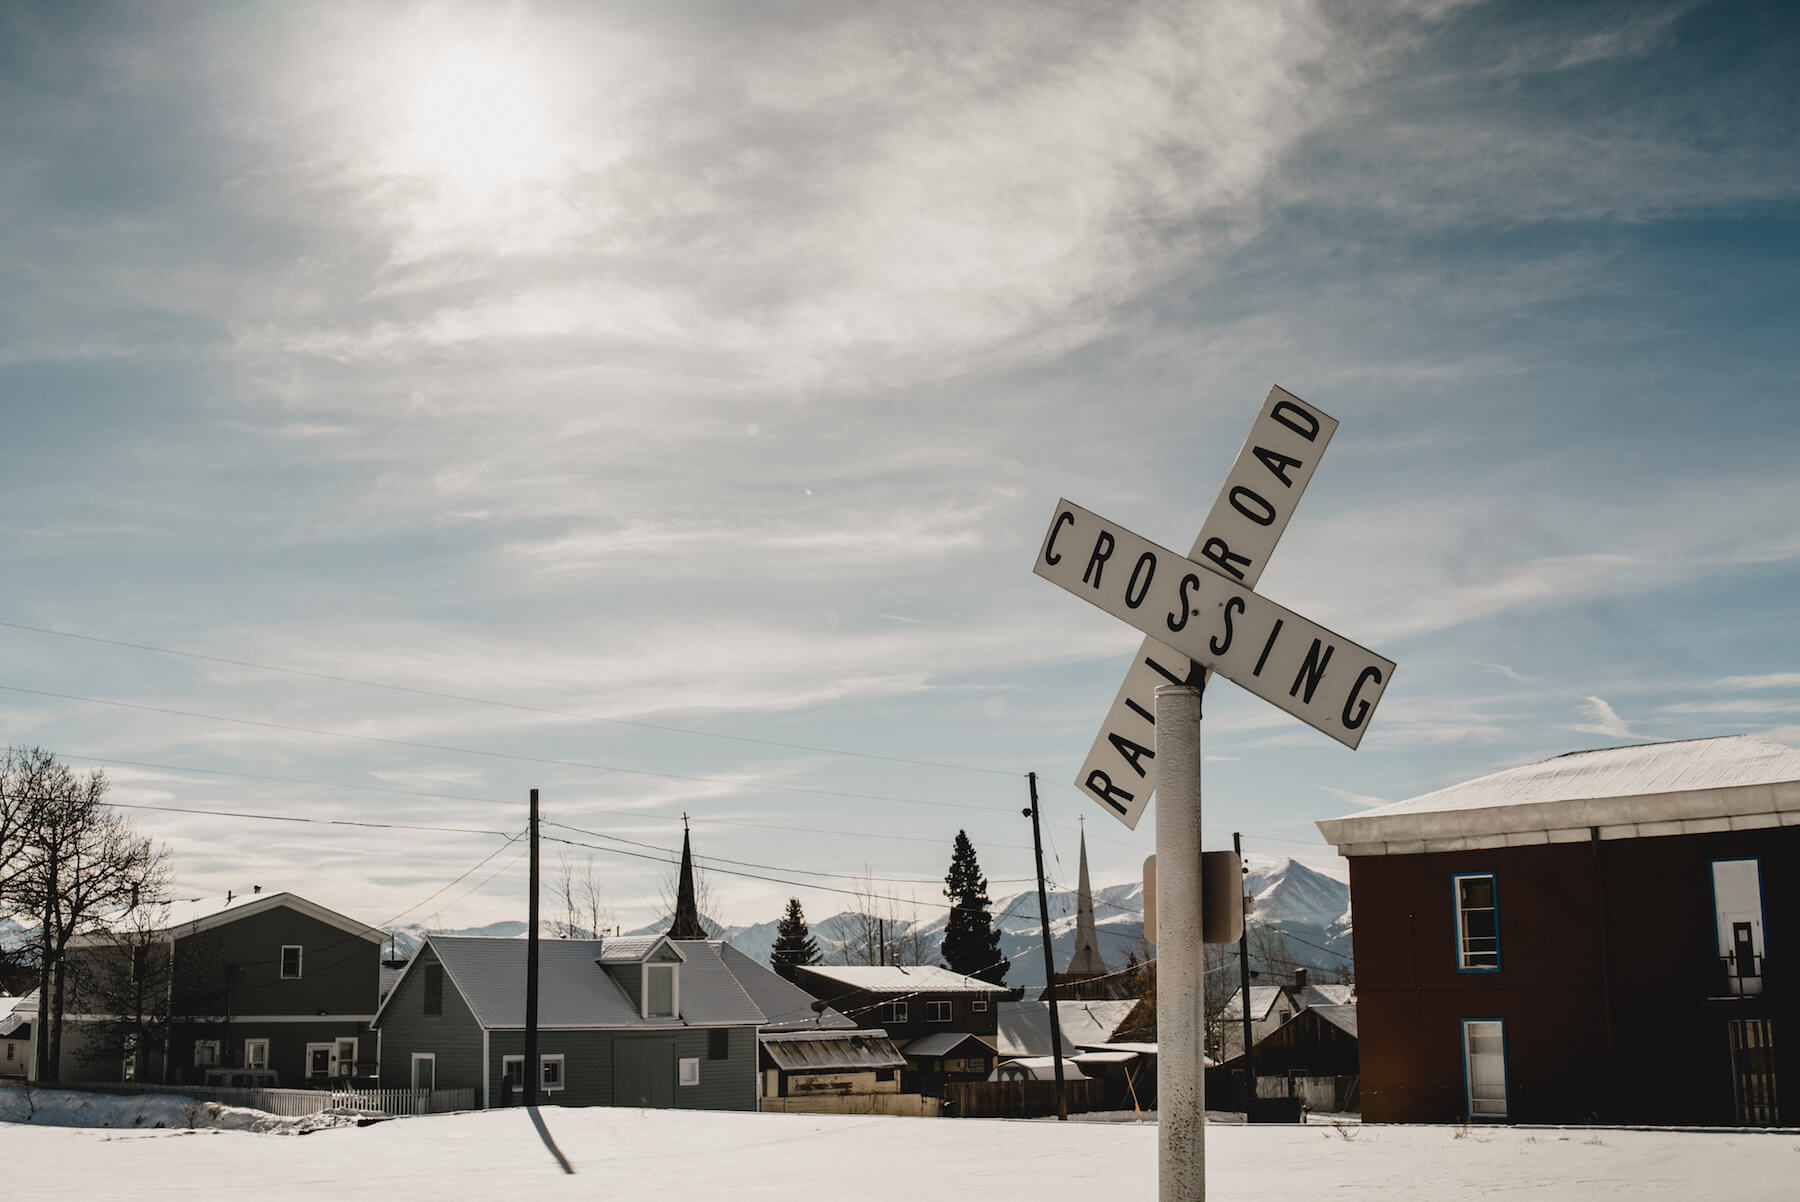 engle-olson-photography-leadville-christmas-20.jpg